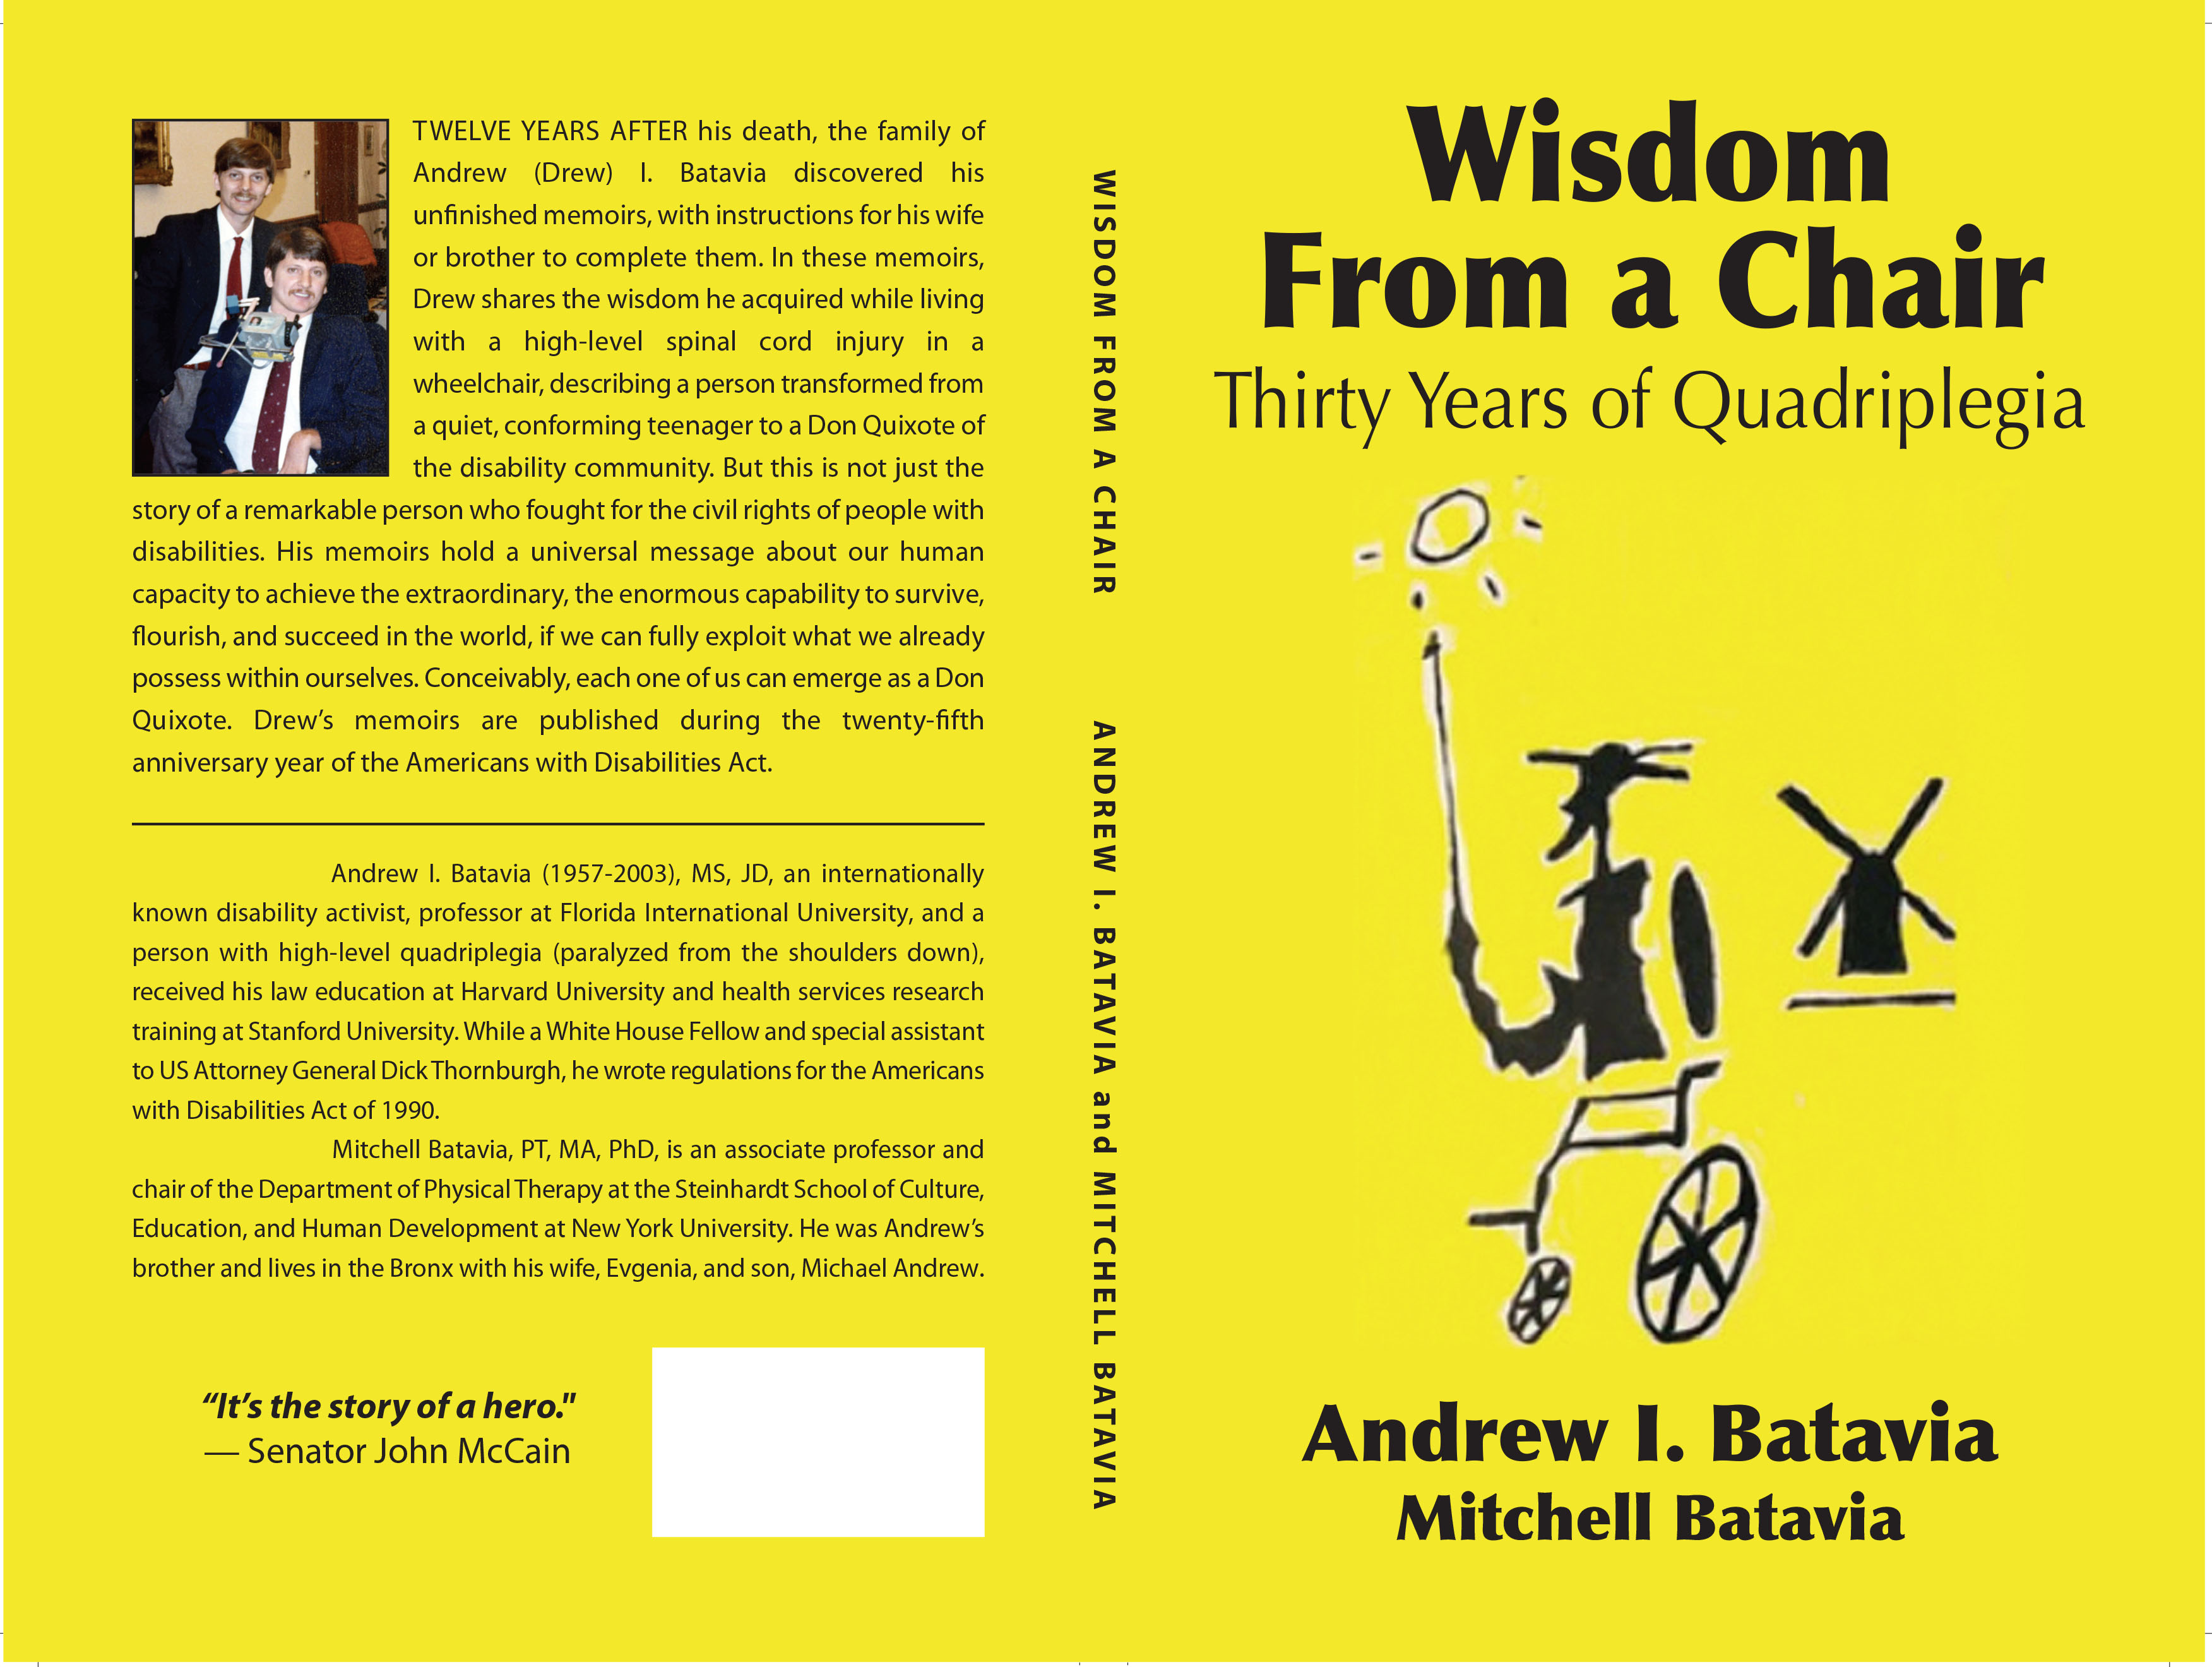 Wisdom from a Chair: Thirty Years of Quadriplegia - bookcover